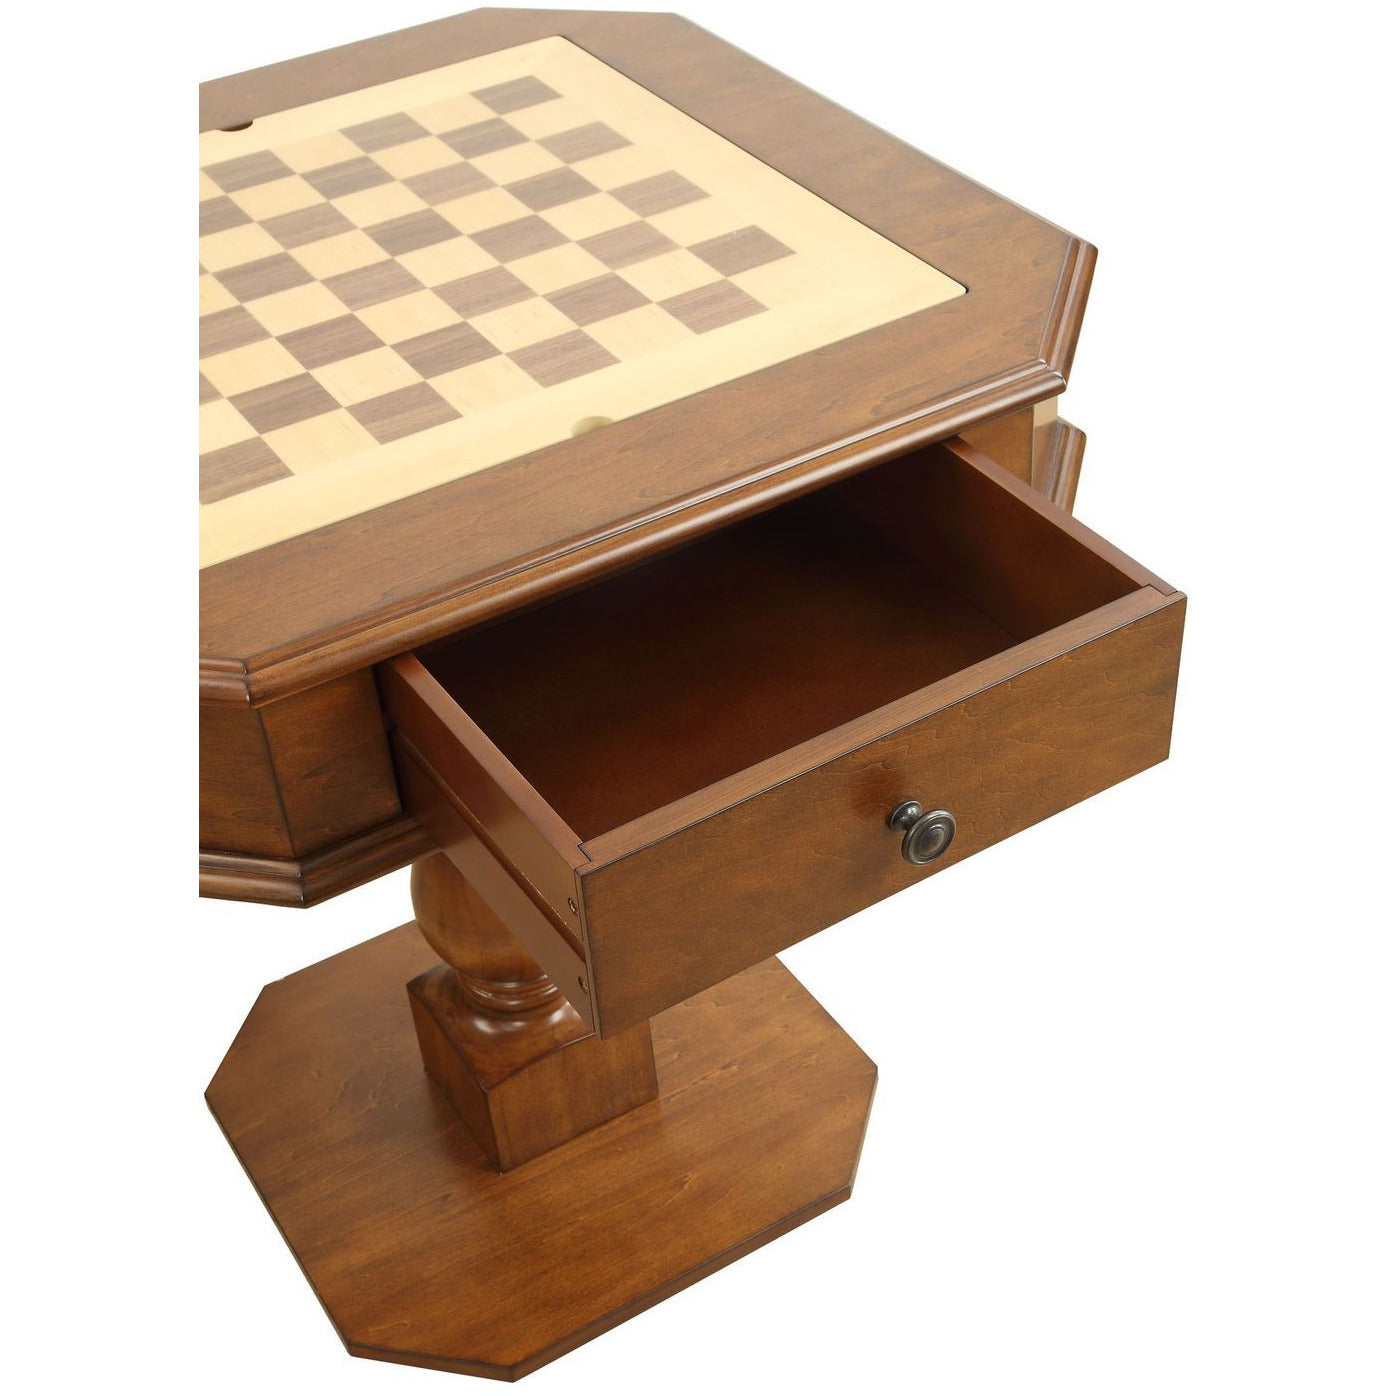 Black Game Table Reversible Game Tray 3-in-1 Chess, Checker, & Backgammon BH82846 BH82844